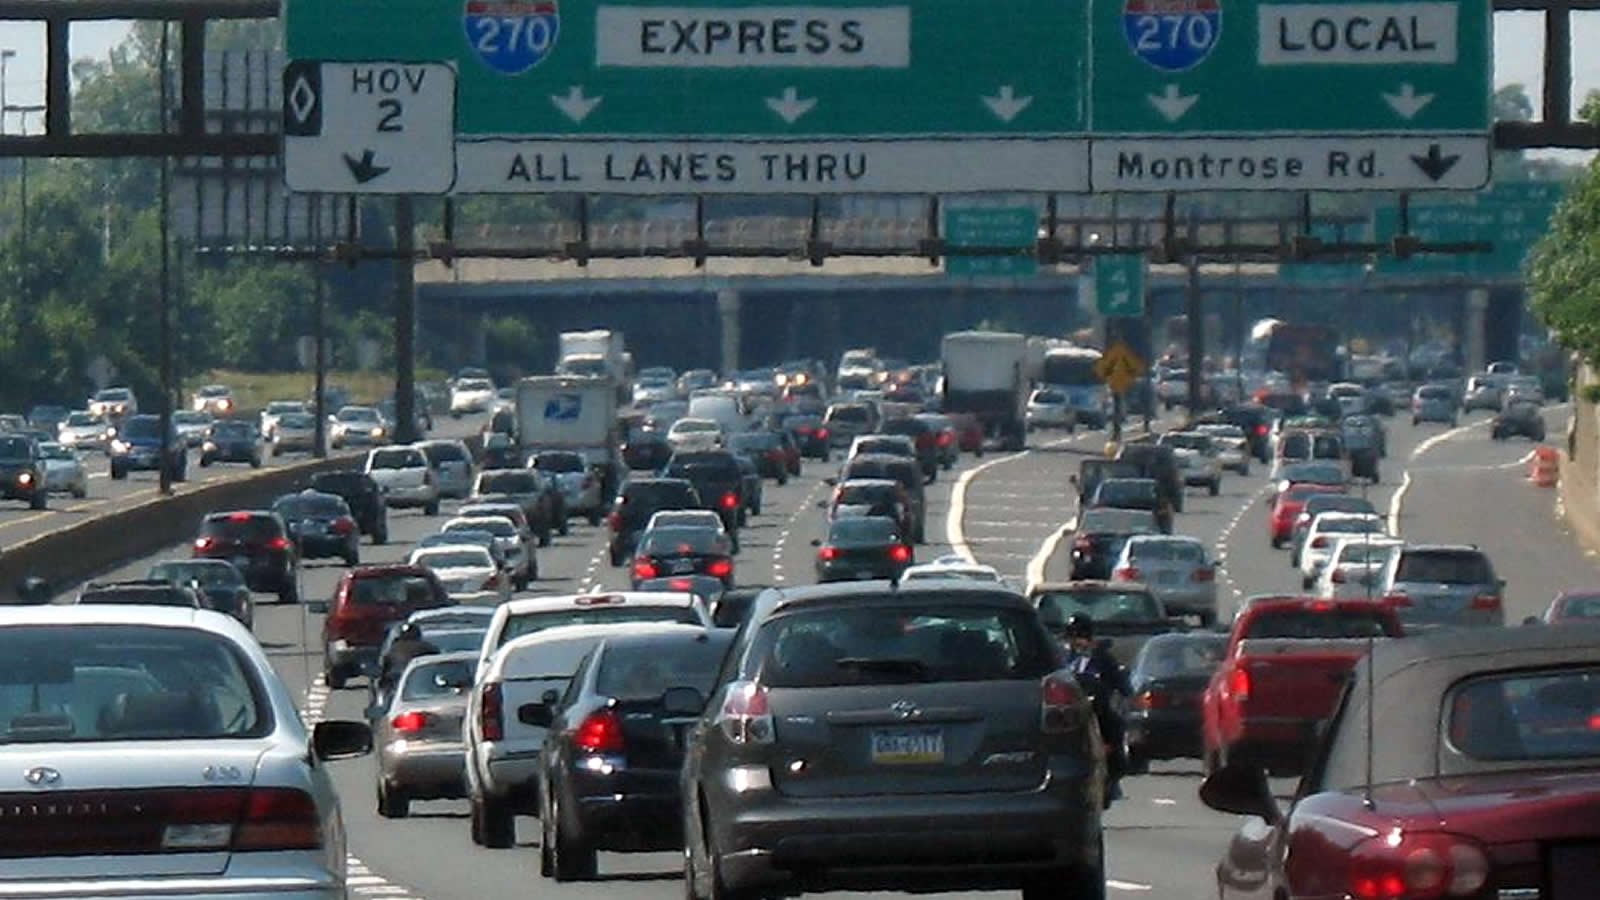 <h3>Traffic Relief Plan, Maryland</h3><h4>Cost: $9 billion</h4><p>It's a boondoggle because: The plan would spend $9 billion on new roads, diverting money away from Maryland's critical transit funding needs – including badly needed maintenance for the Baltimore Metro, which was forced to close for urgent repairs in February 2018.</p><em>Public Domain via Wikimedia</em>